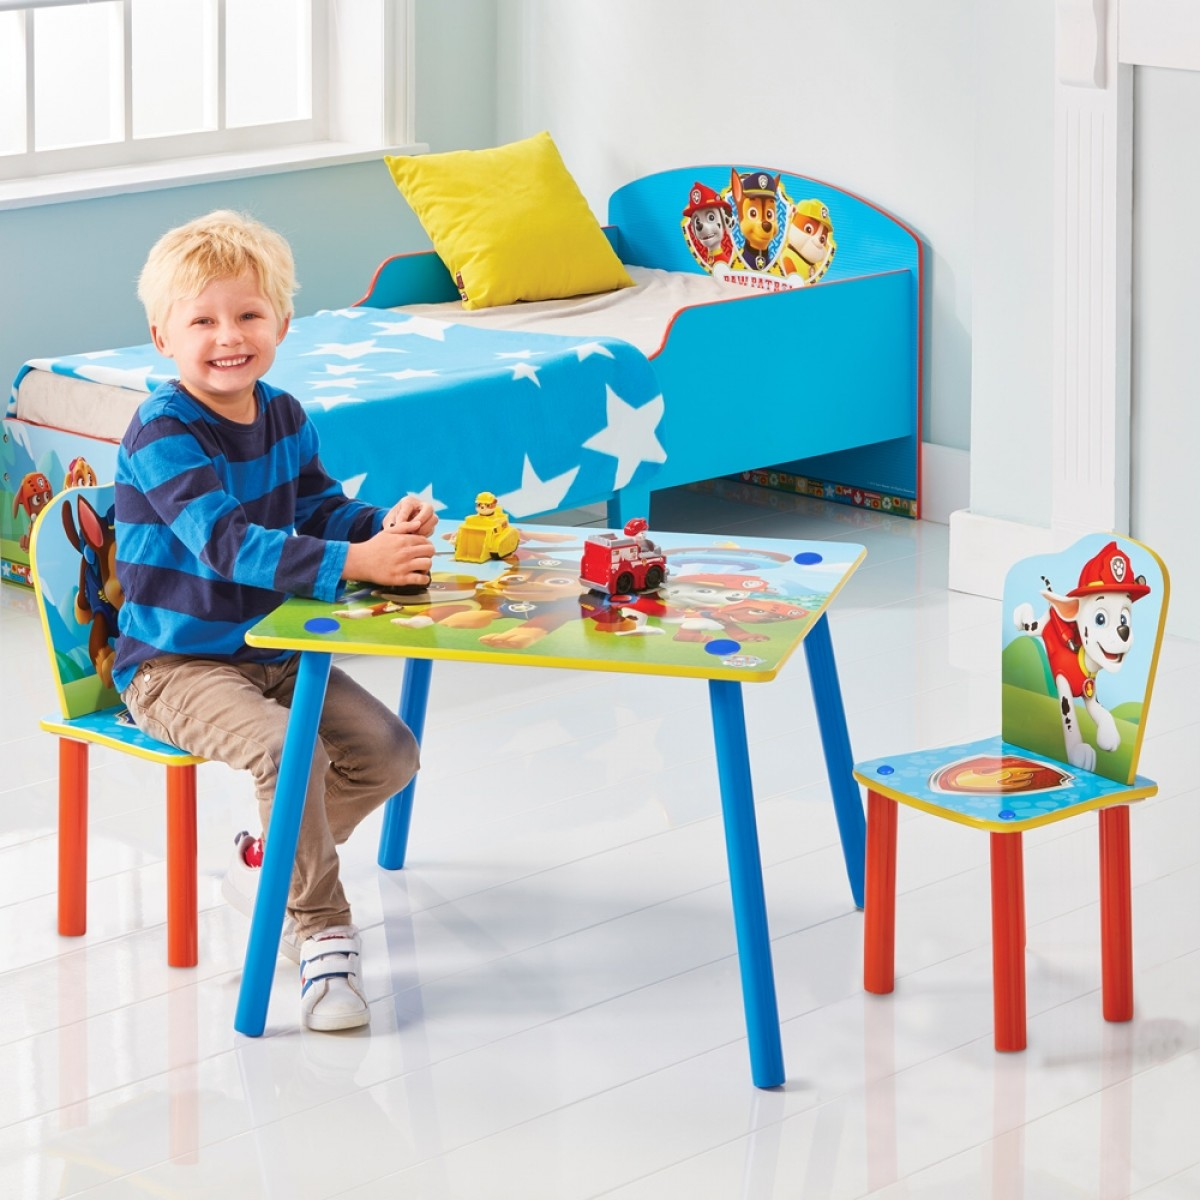 Paw Patrol Table and Chairs